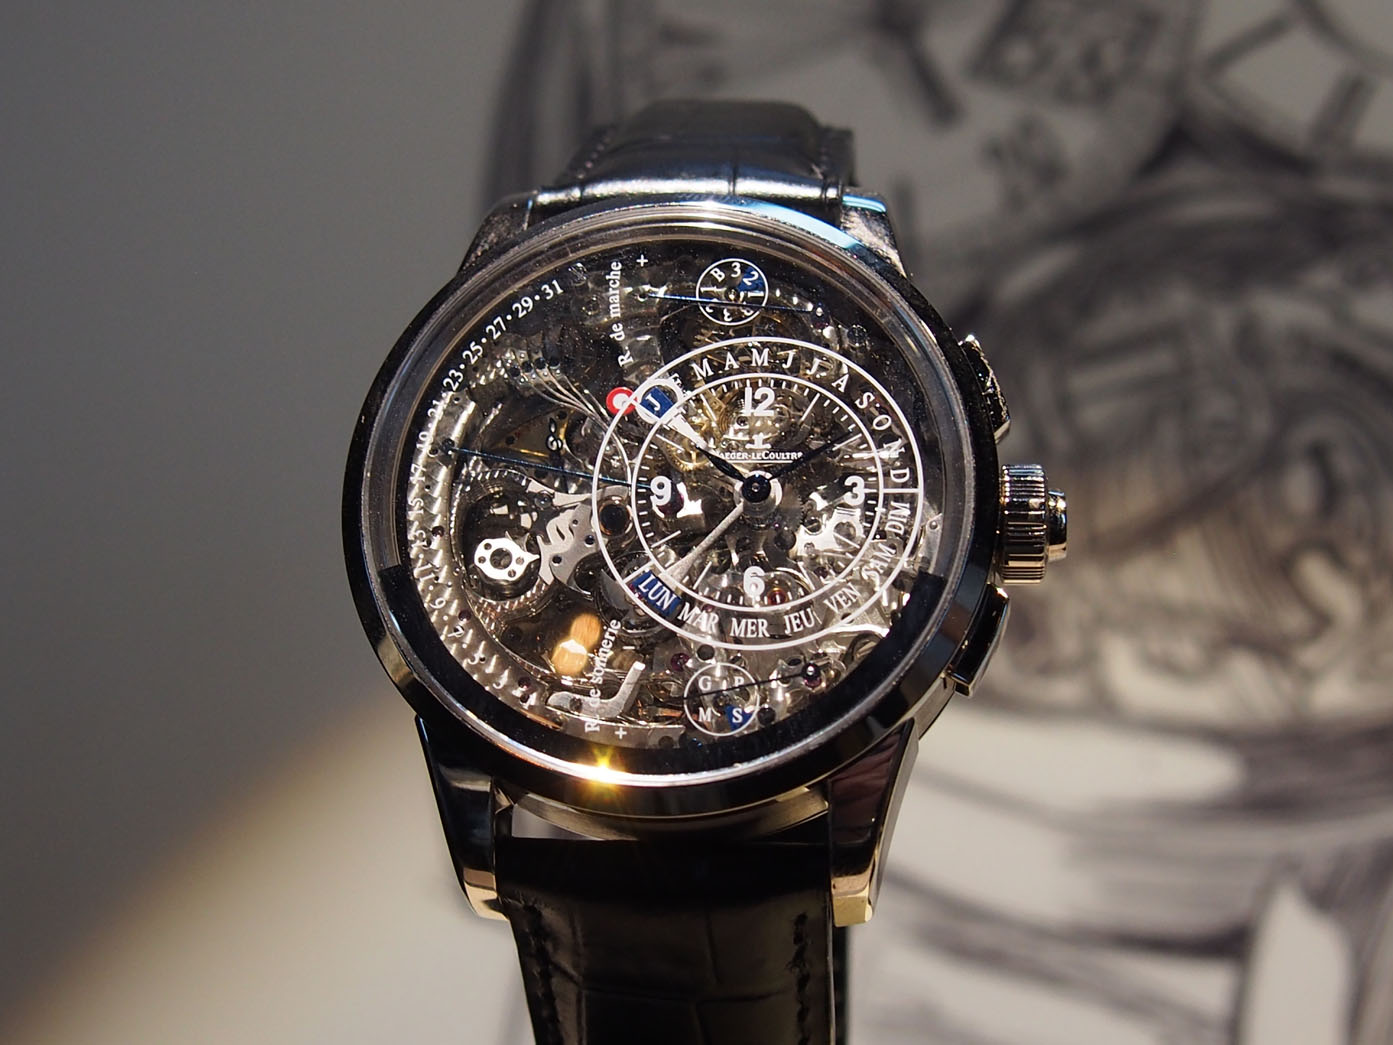 Duometre-a-Grand-Sonnerie-dial-in-rock-crystal